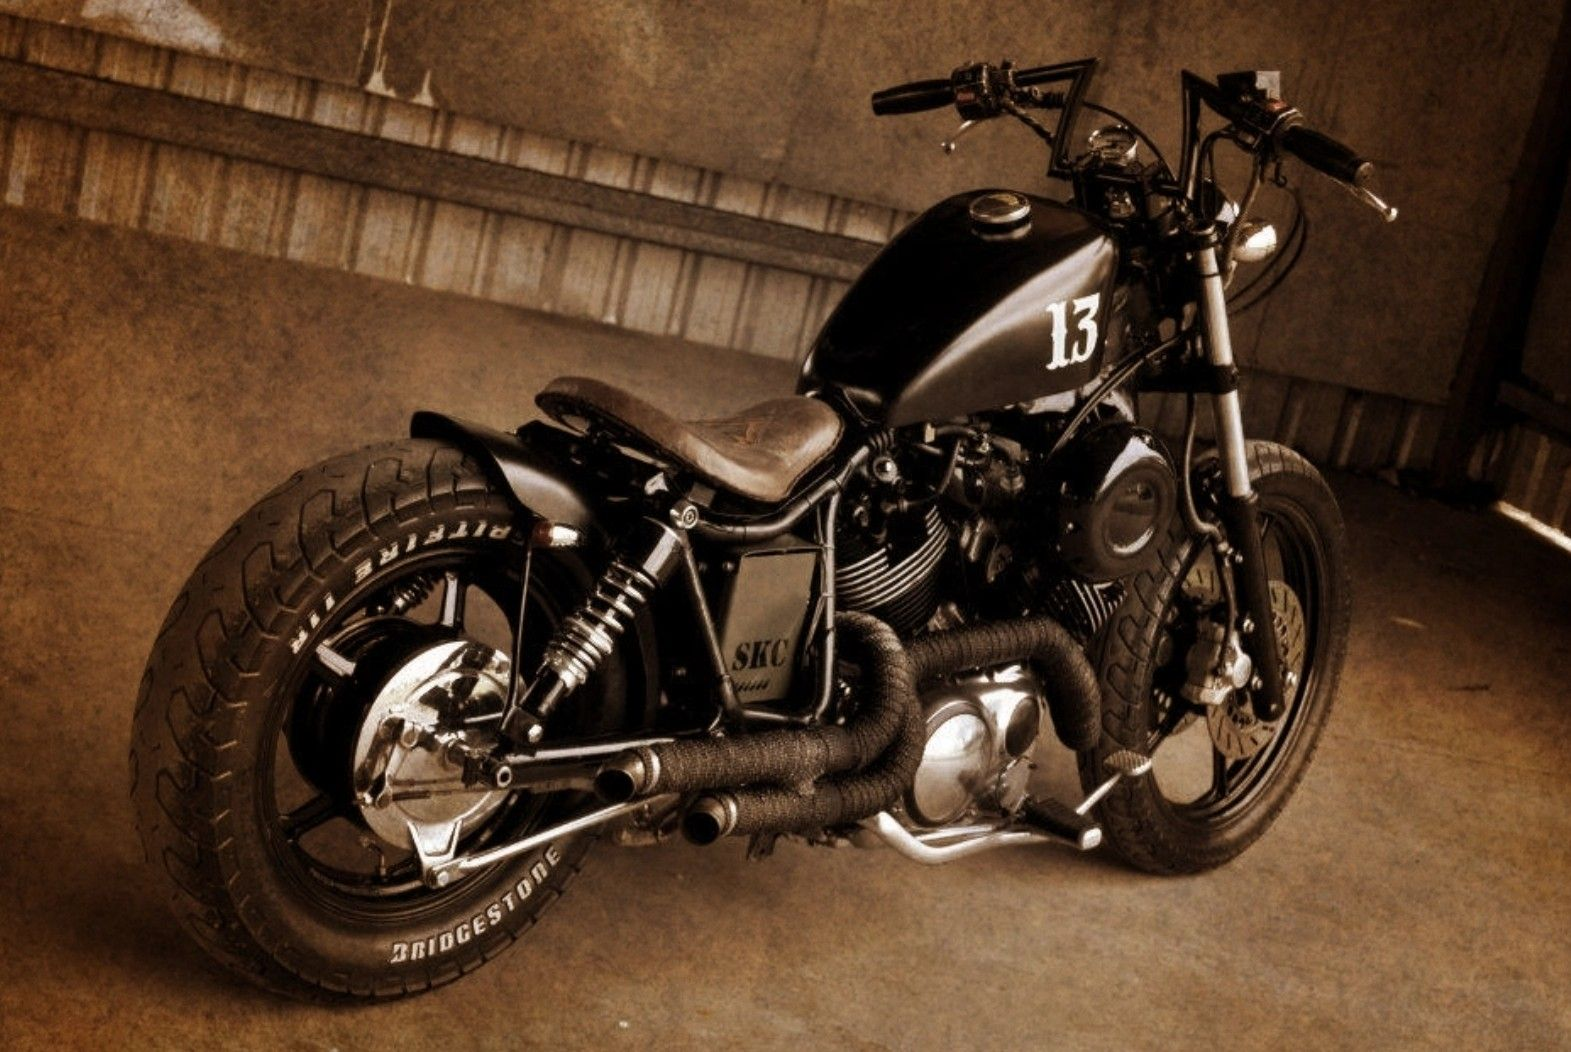 for the Middle sector, Virago XV750s stock gas tank is